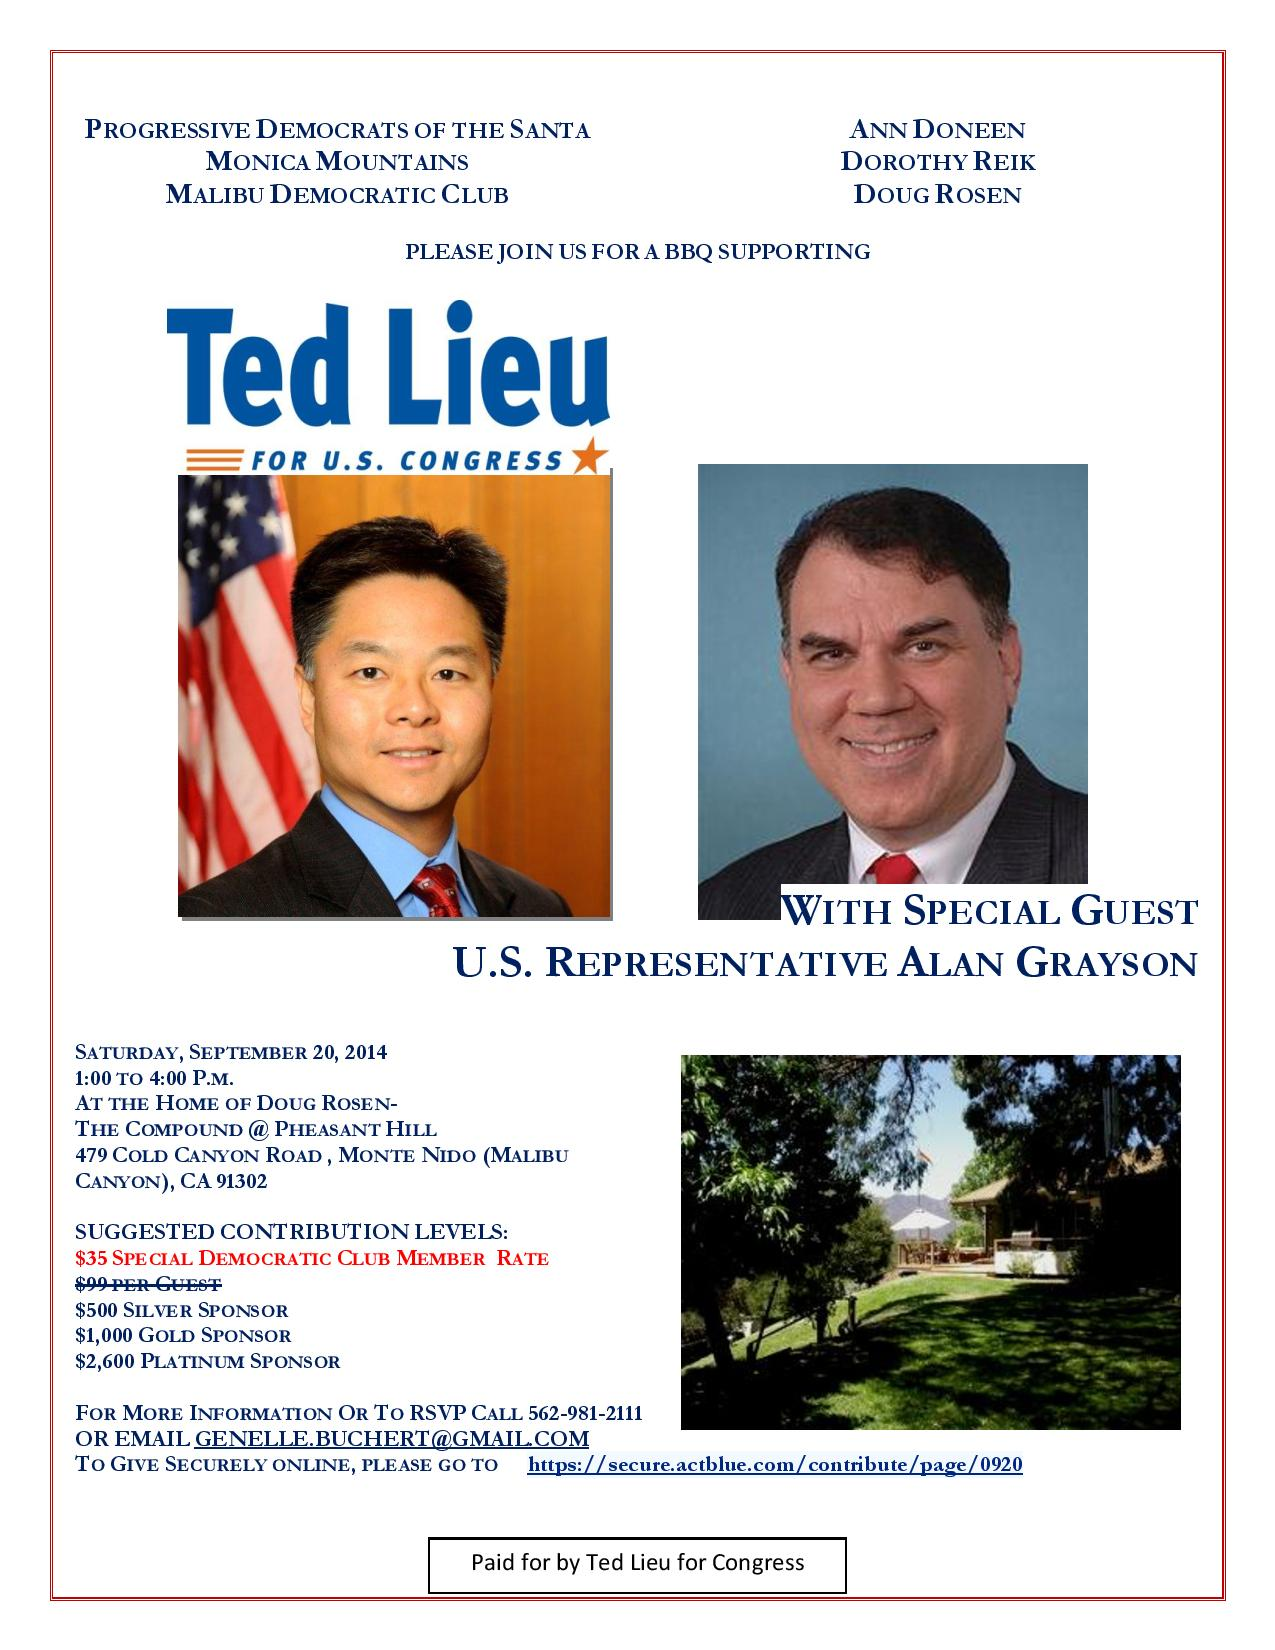 Ted Lieu for Congress Invitation